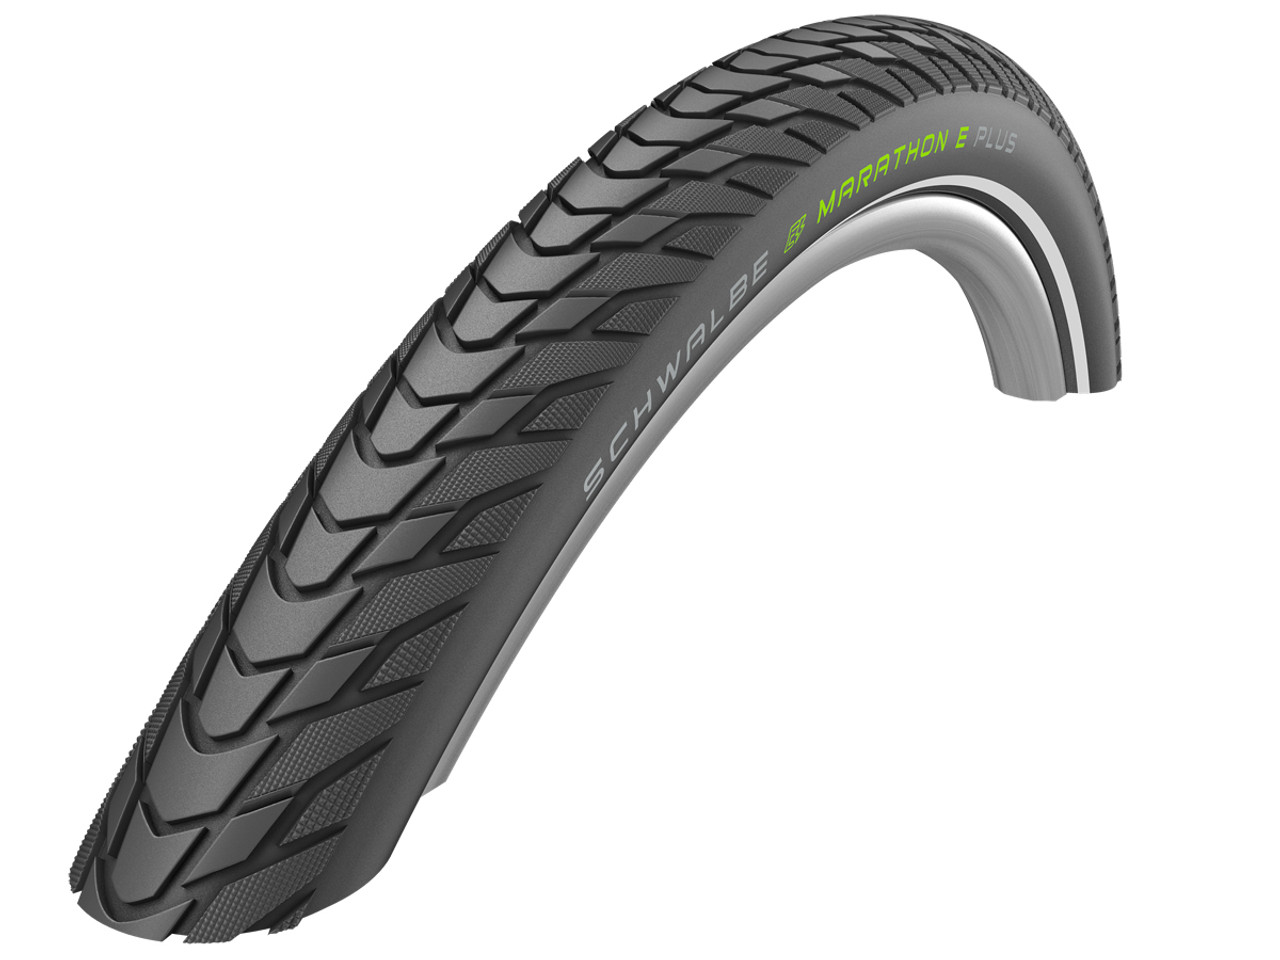 Schwalbe Marathon E-Plus Addix-E Performance Smart DualGuard Wired Tyre in Black